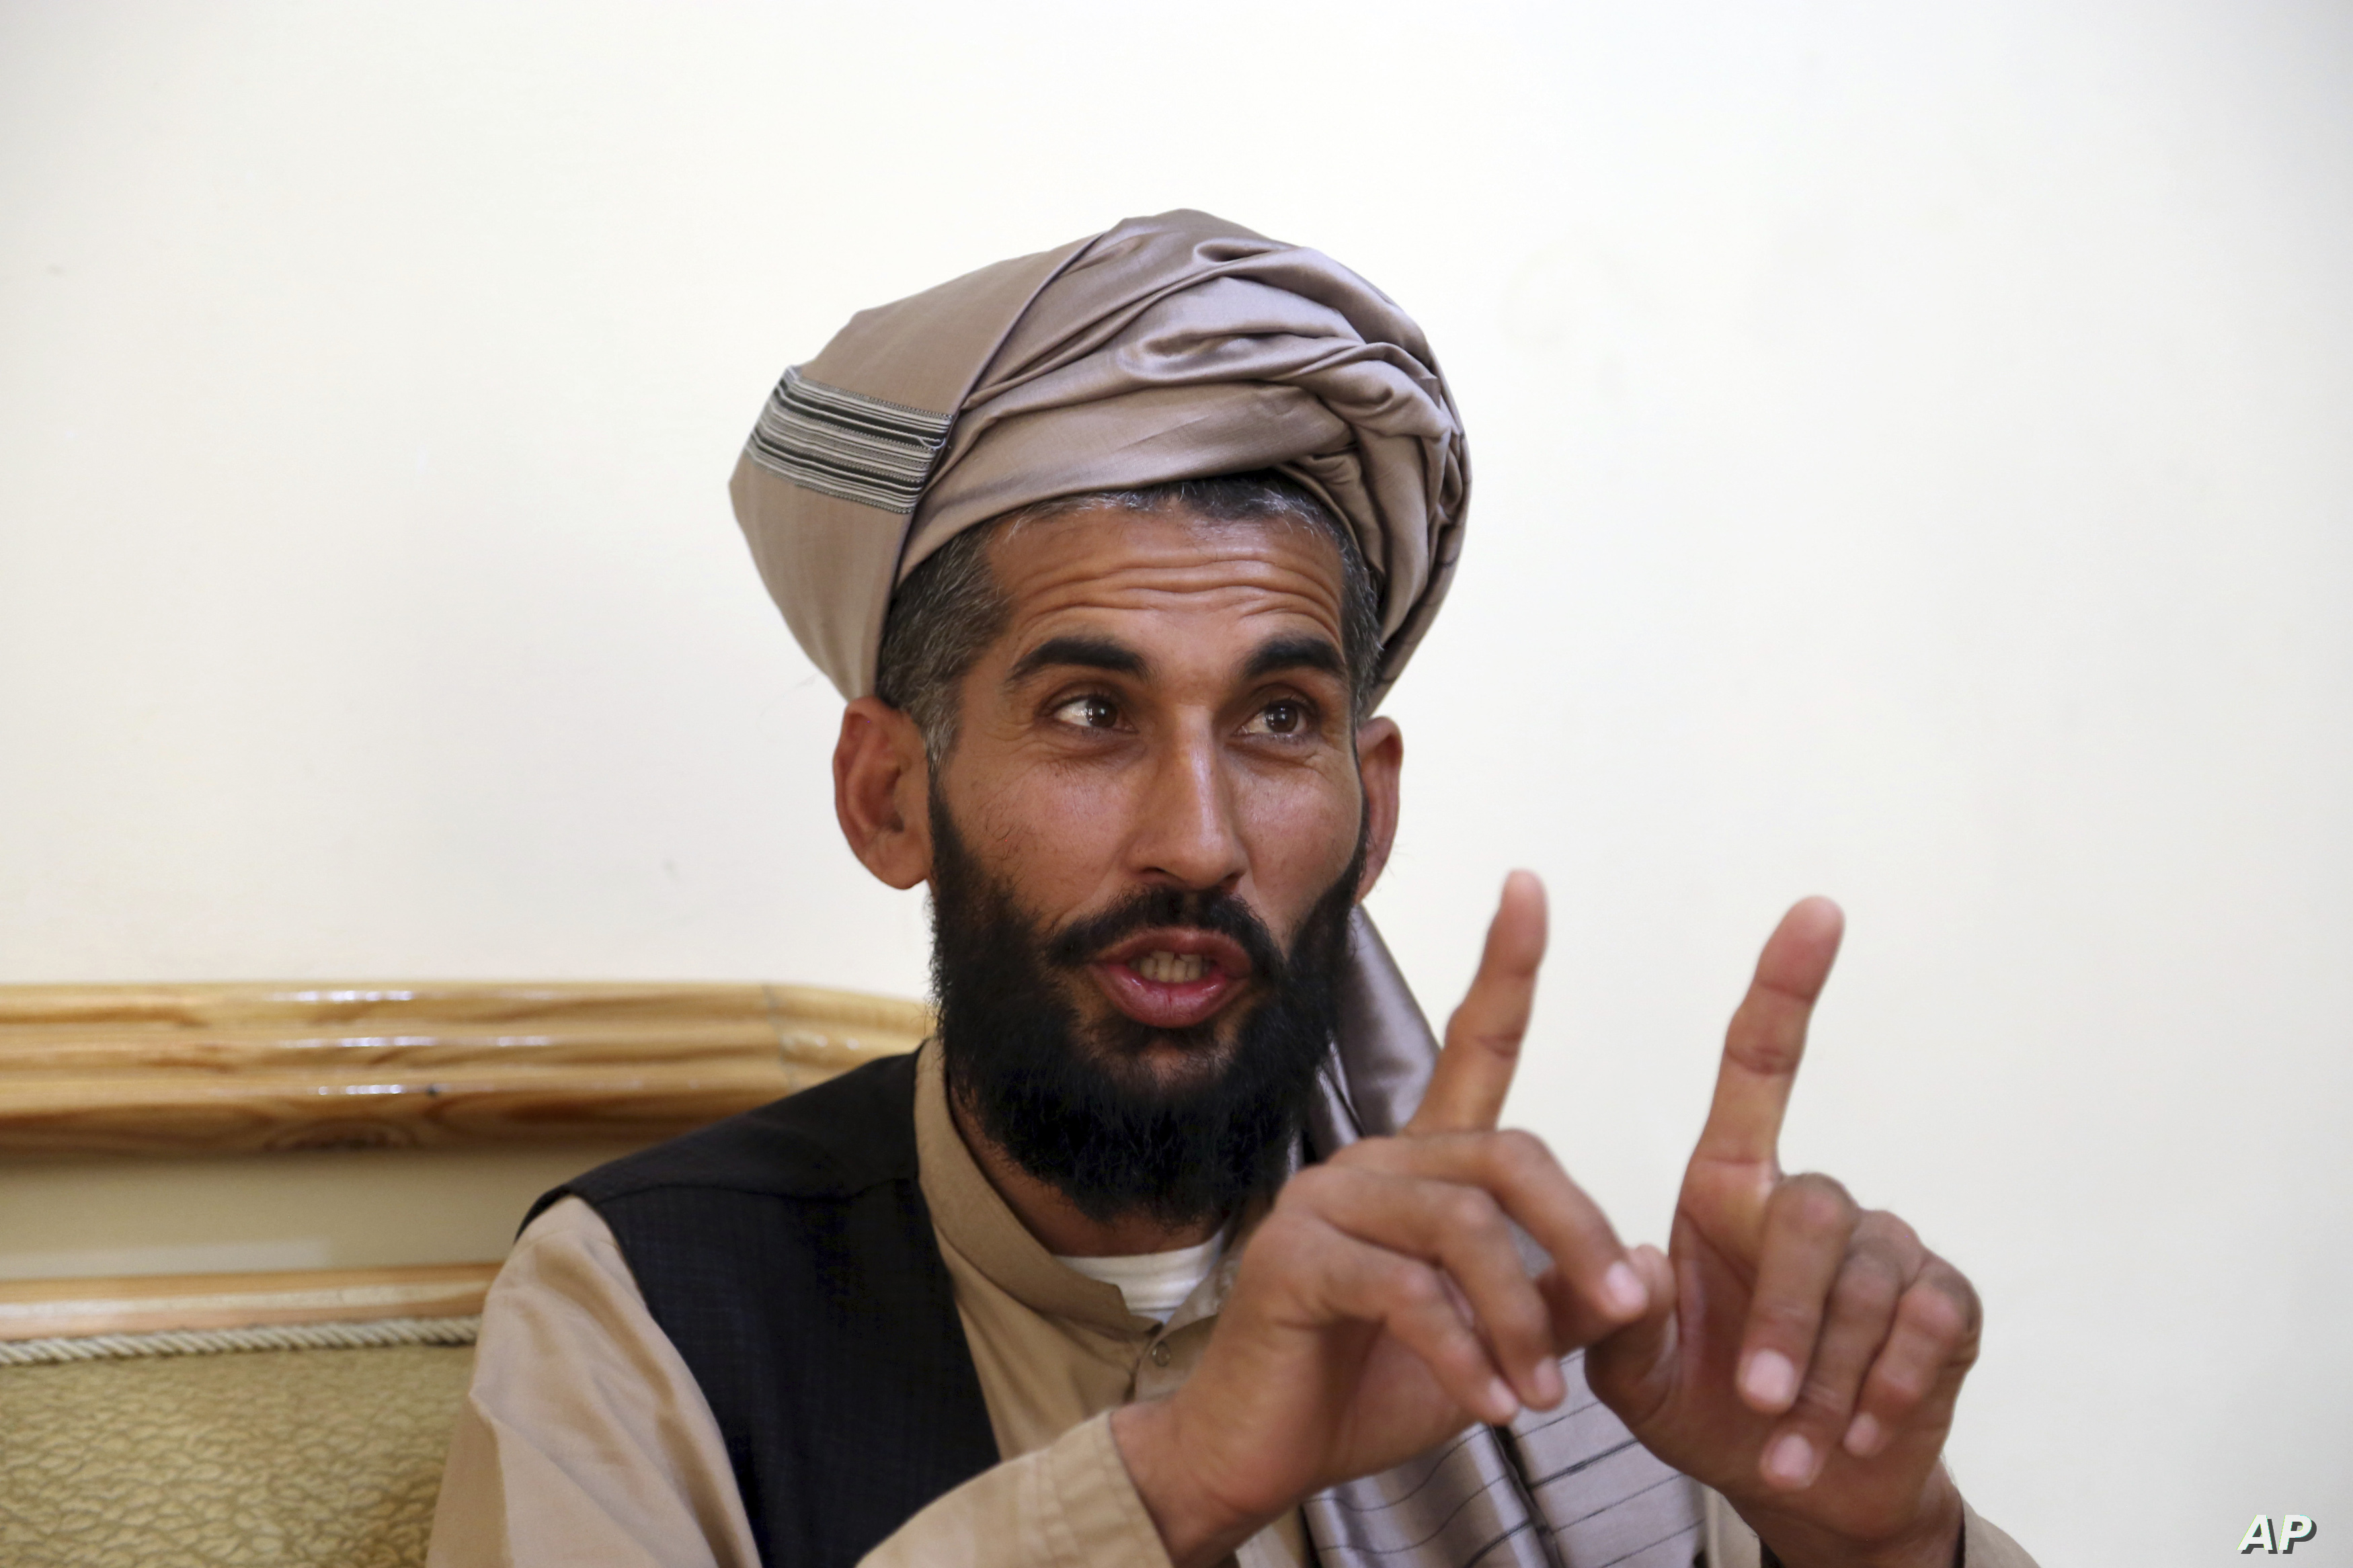 Masih Rahman speaks during an interview with the Associated Press in Kabul, Afghanistan, April 23, 2019. In September last year Masih Rahman's entire family of 11 people, his wife, four daughters, three sons and four nephews, were killed when a bomb ...